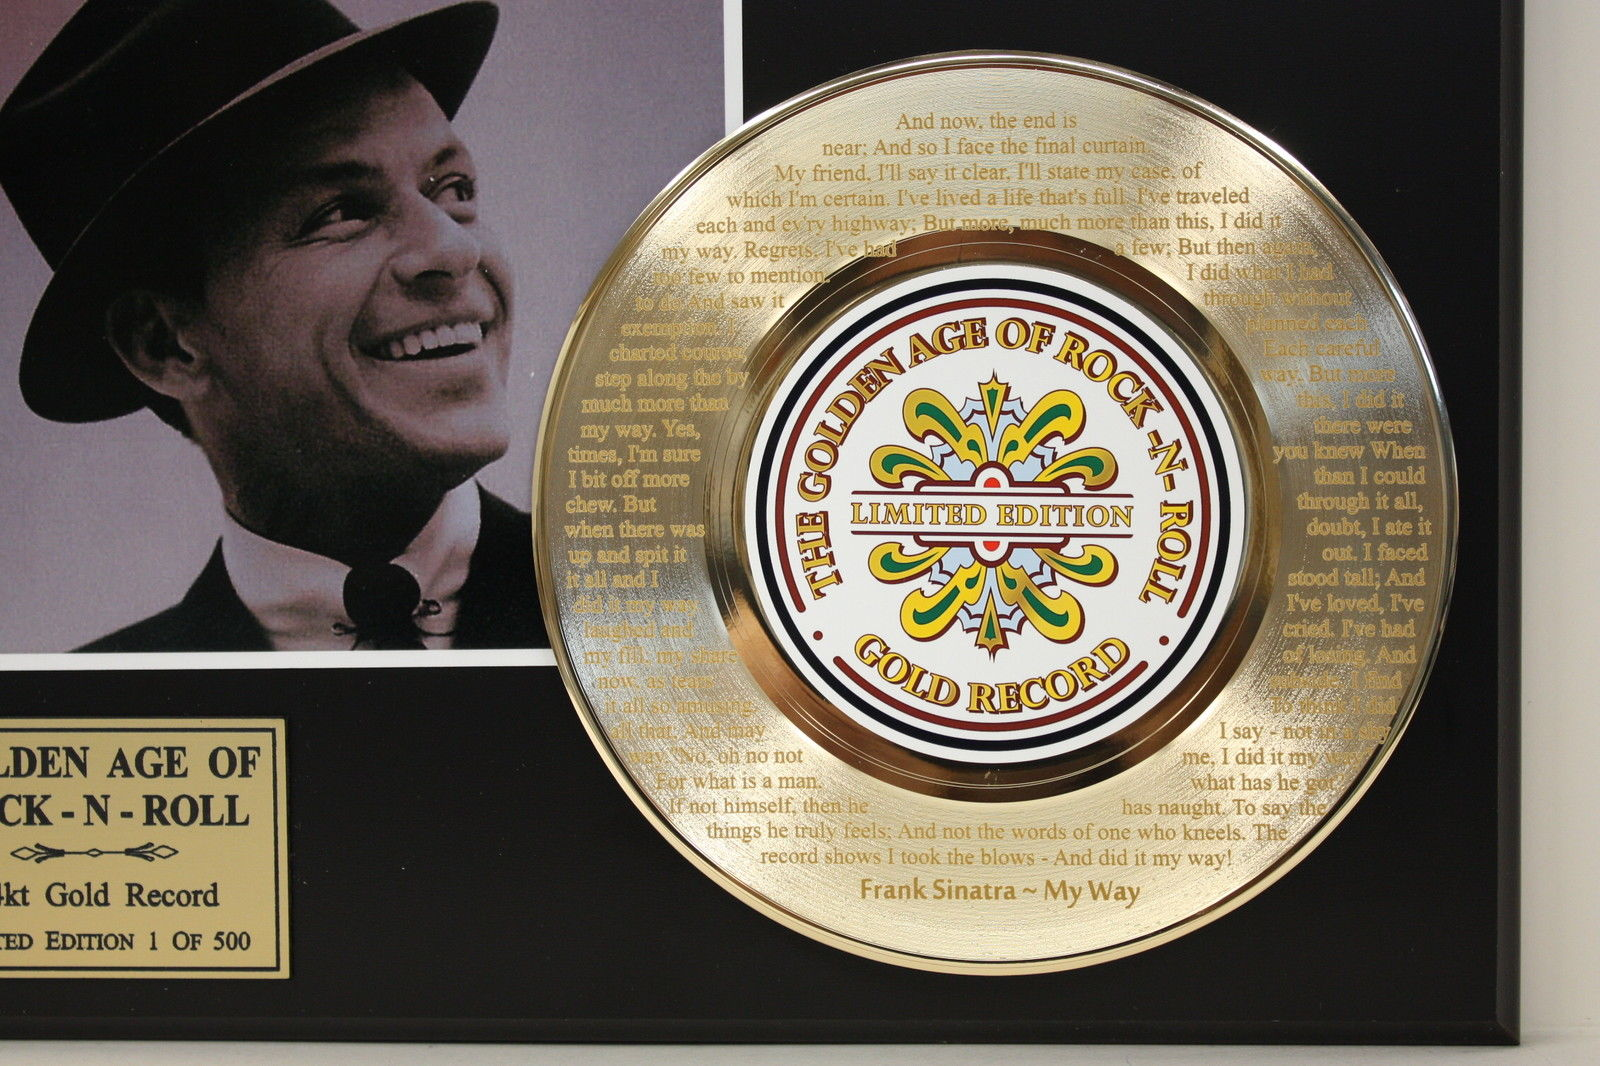 FRANK SINATRA MY WAY GOLD RECORD LTD EDITION LASER ETCHED WITH SONGS LYRIC 171369069740 3